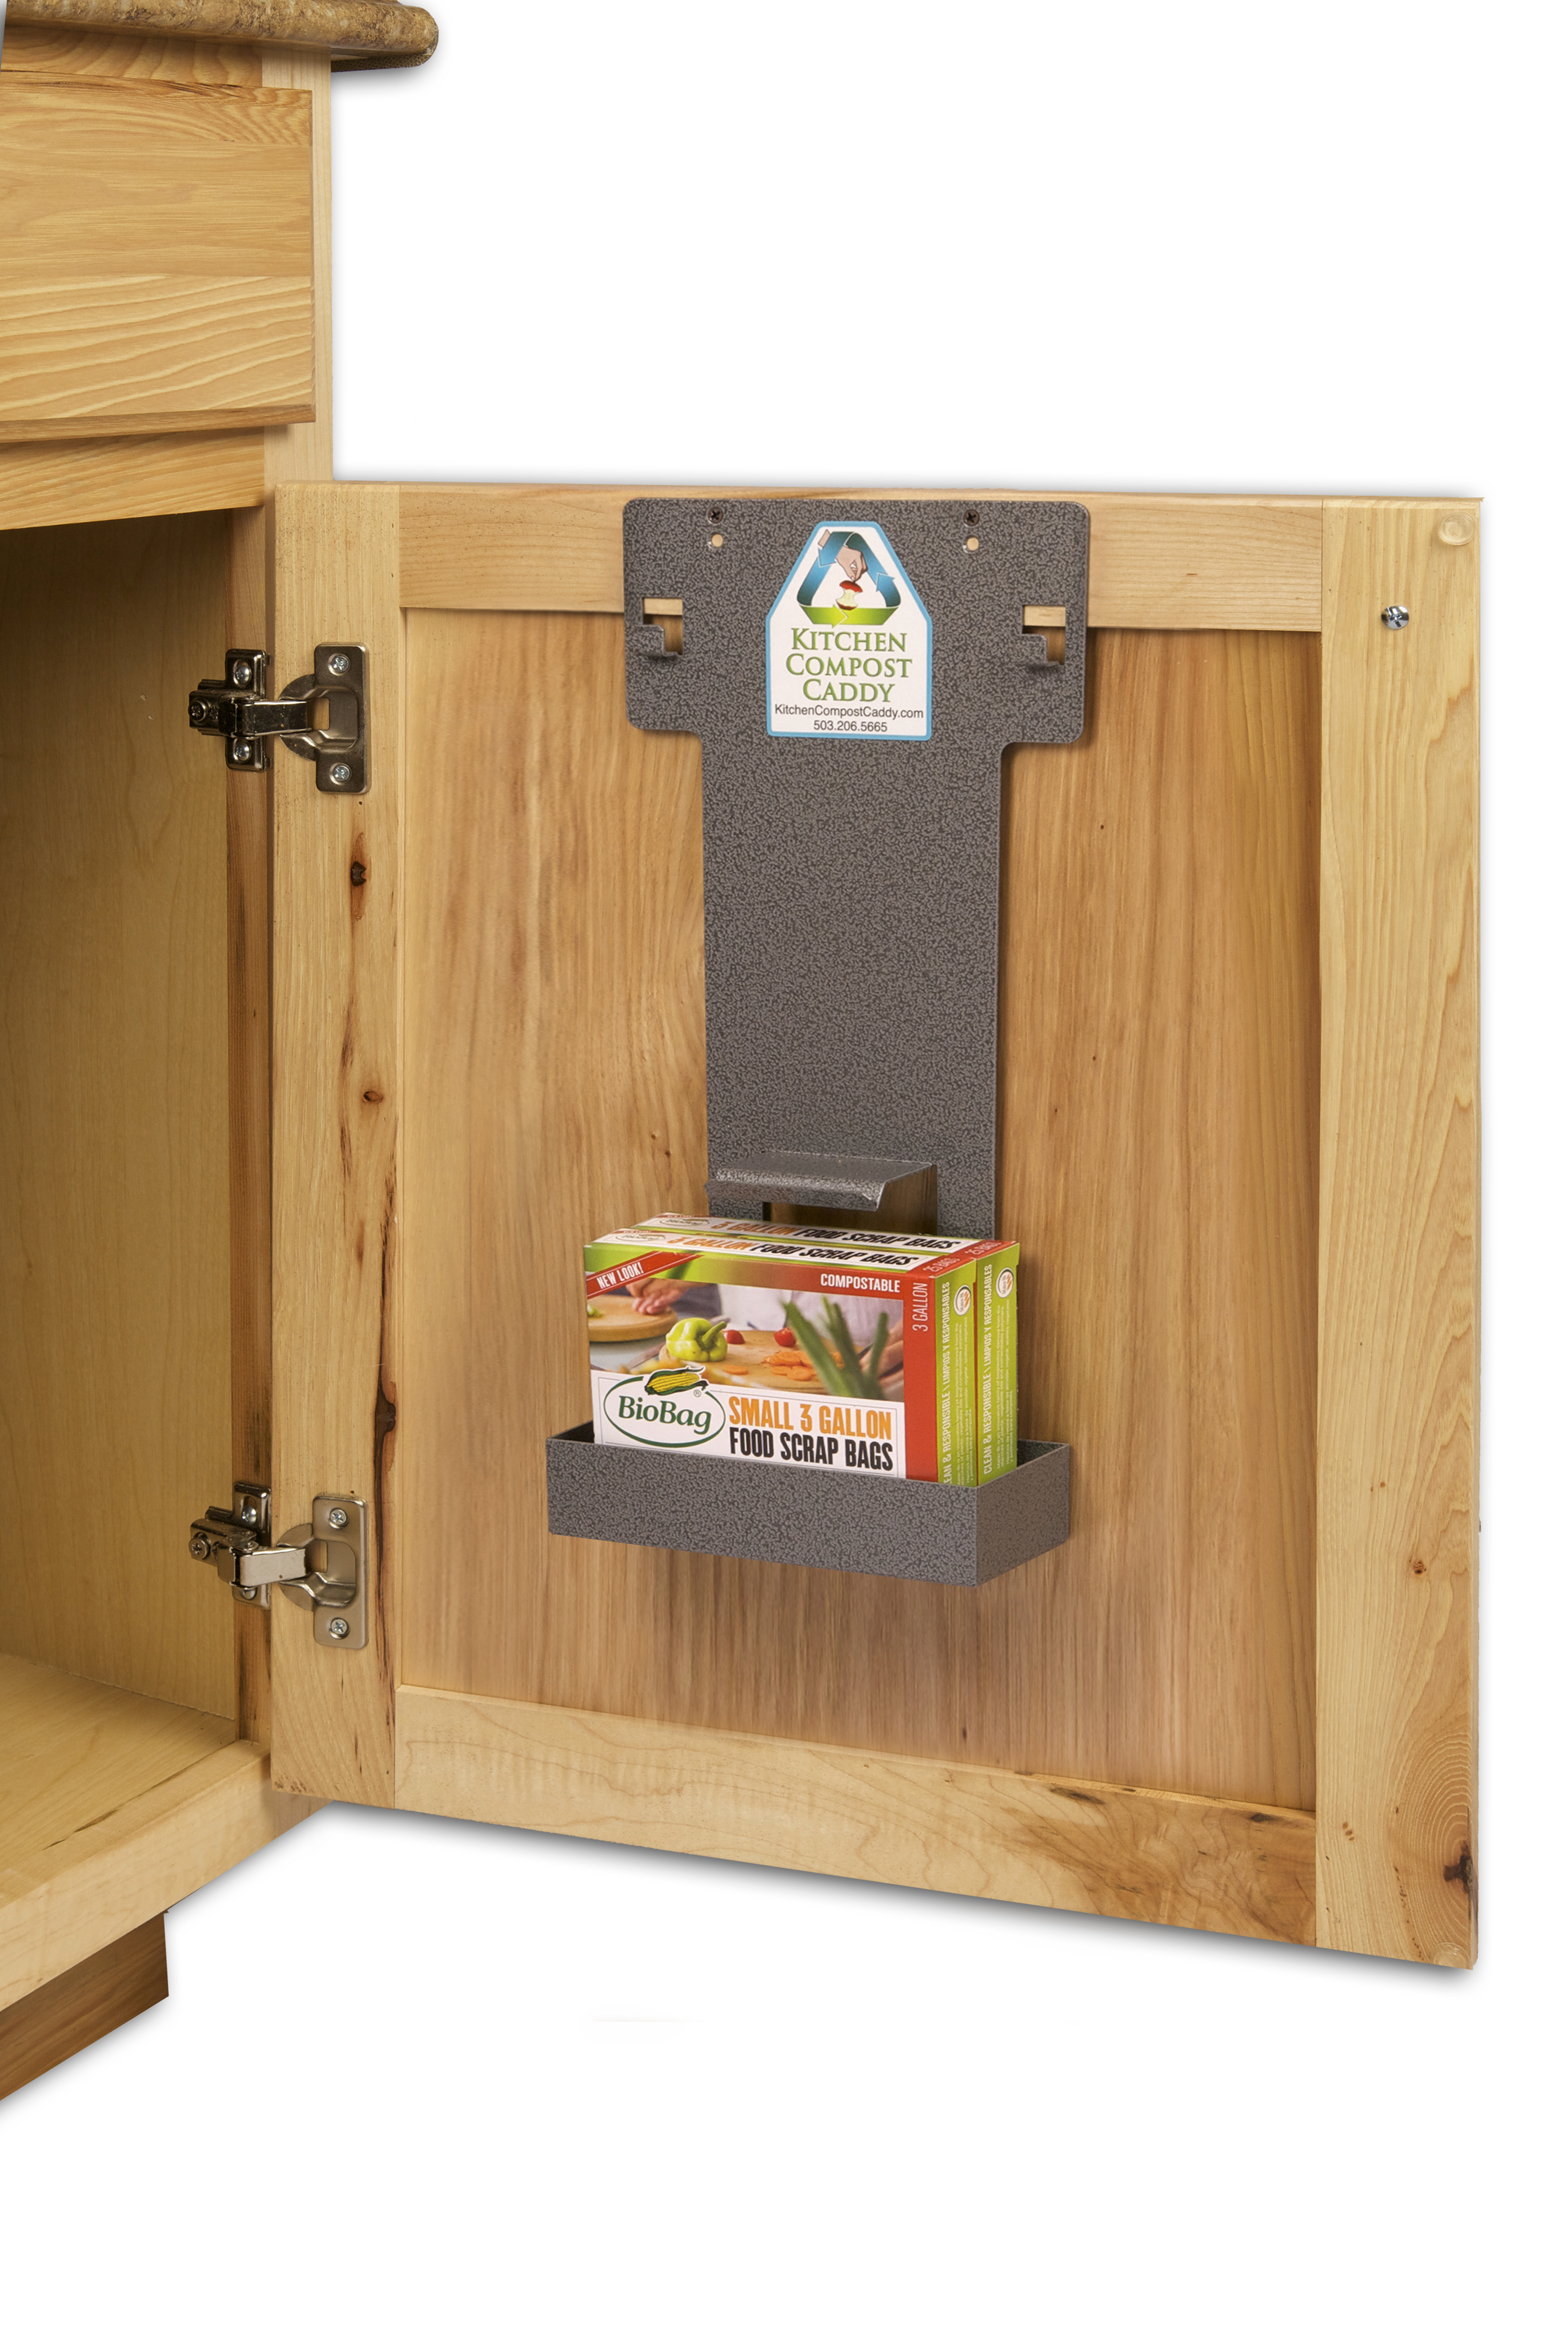 Kitchen compost caddy cabinet mounted cabinet mounting for Beaverton kitchen cabinets reviews